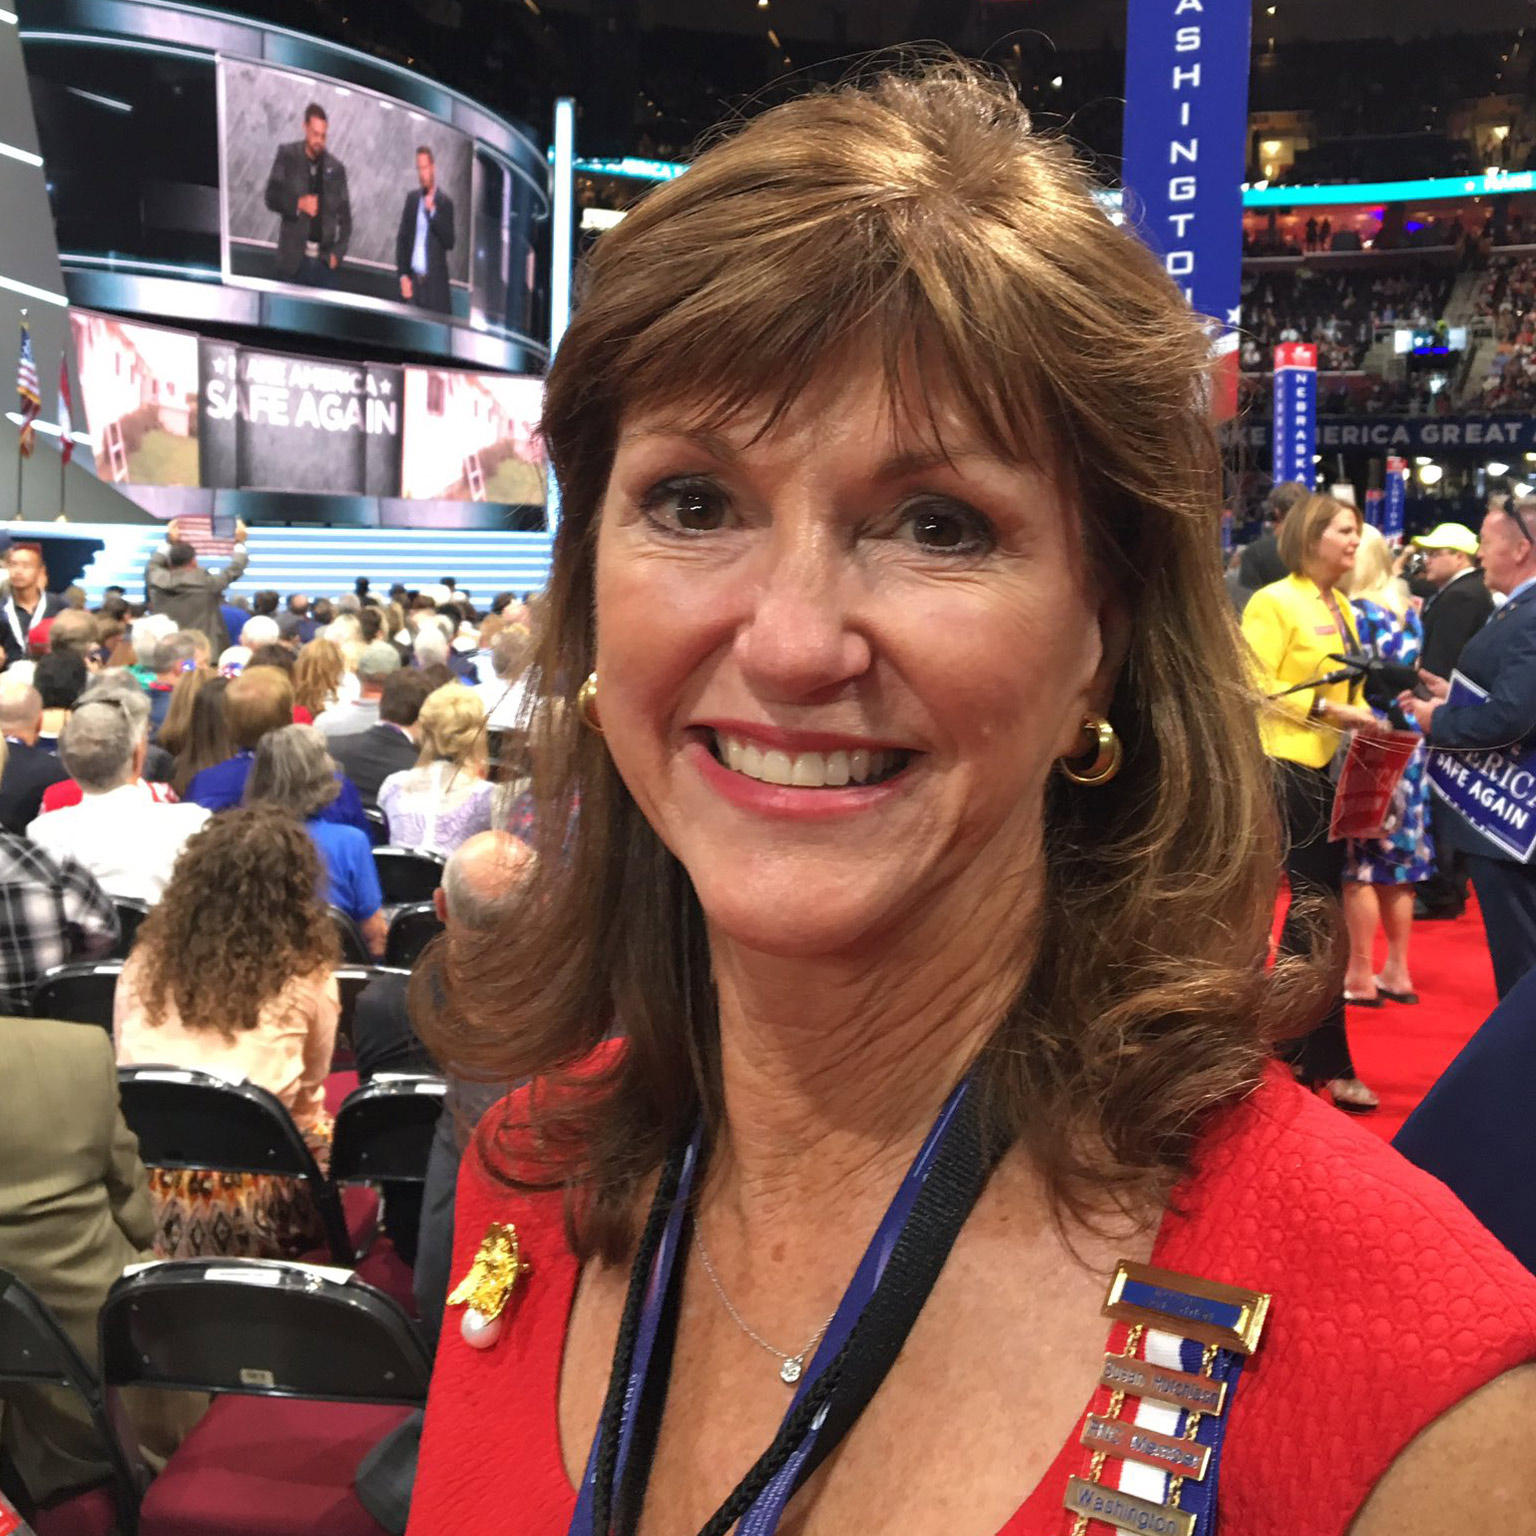 Thompson sees Trump as winner, Cruz as loser at convention